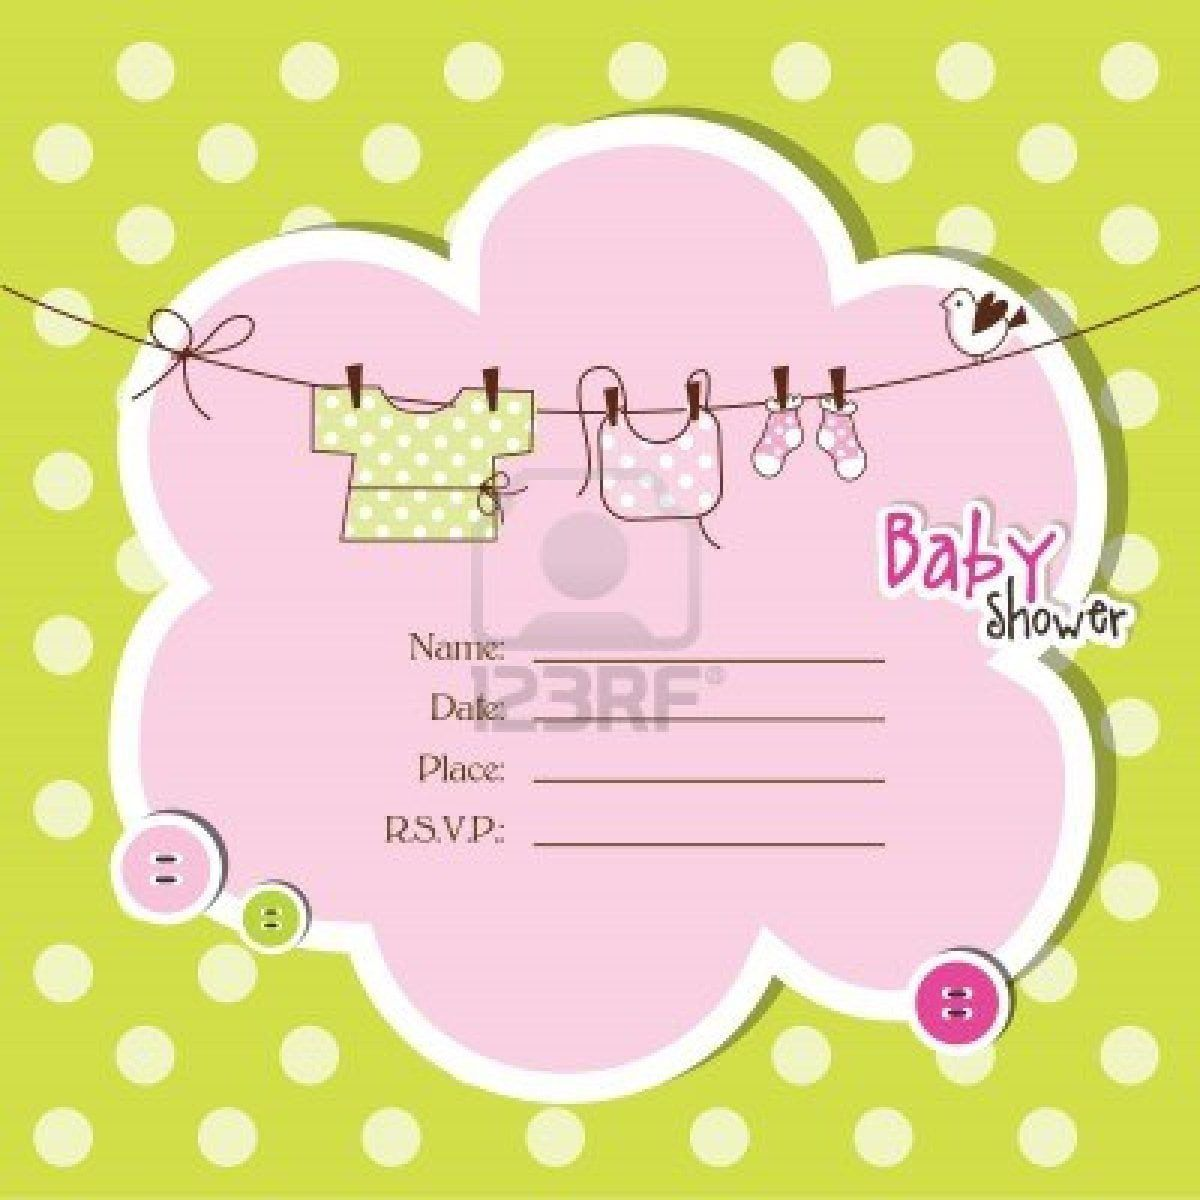 008 Beautiful Free Baby Shower Template For Powerpoint Sample  BackgroundFull